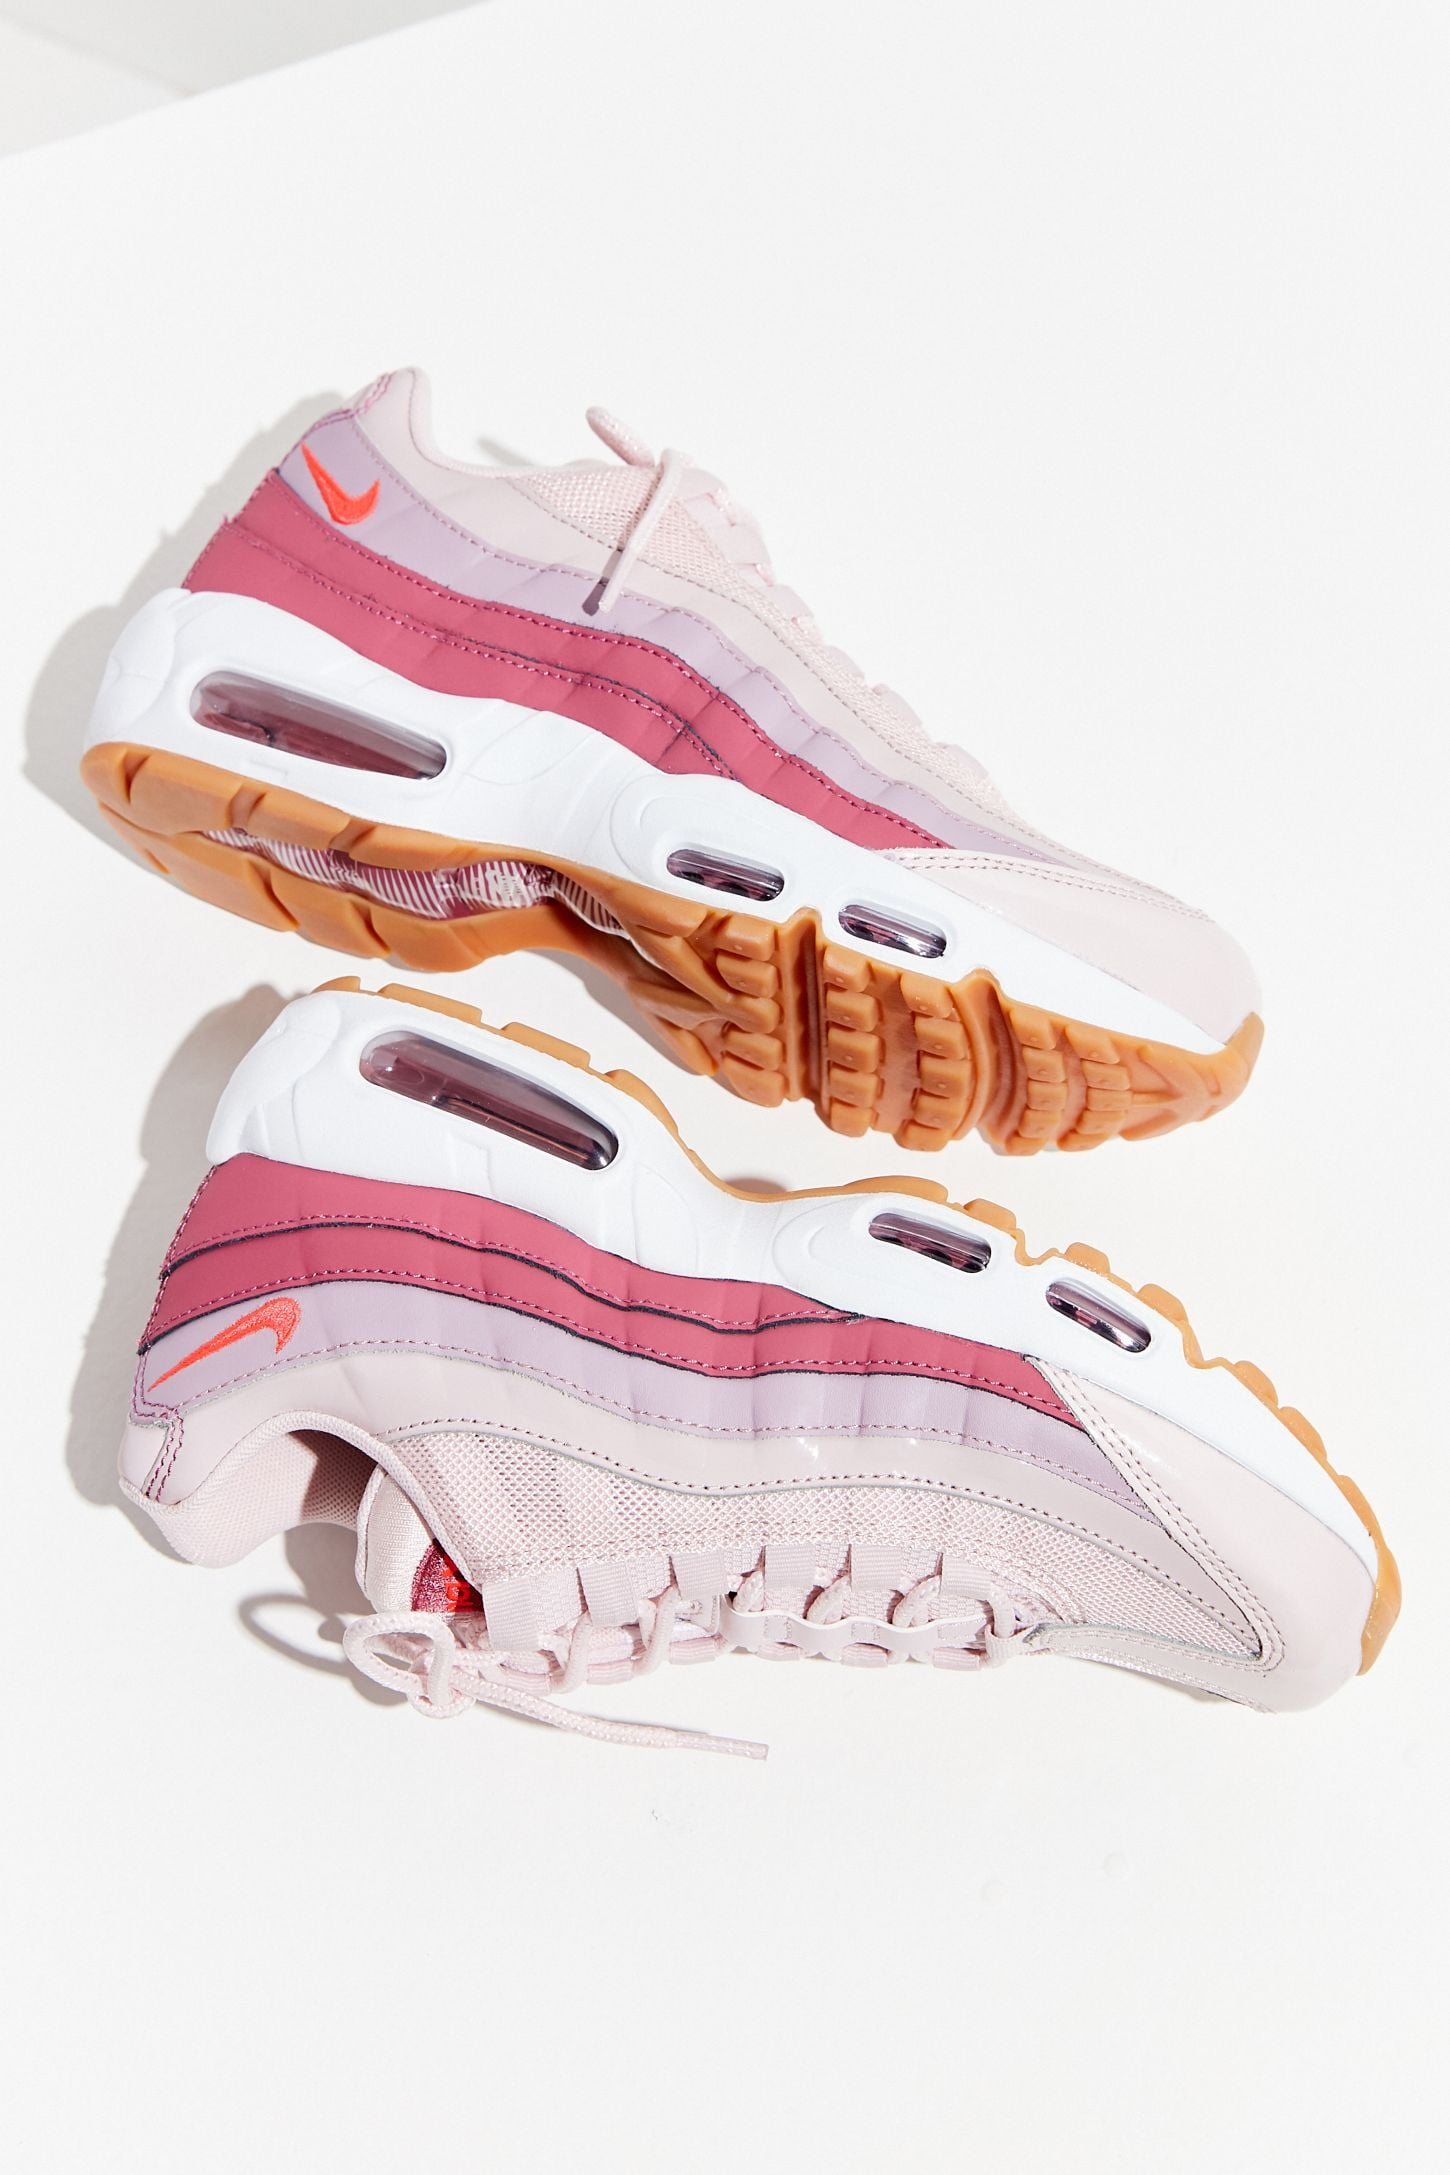 Nike Air Max 95 Sneaker | Urban Outfitters Dropped a Ton of New ...